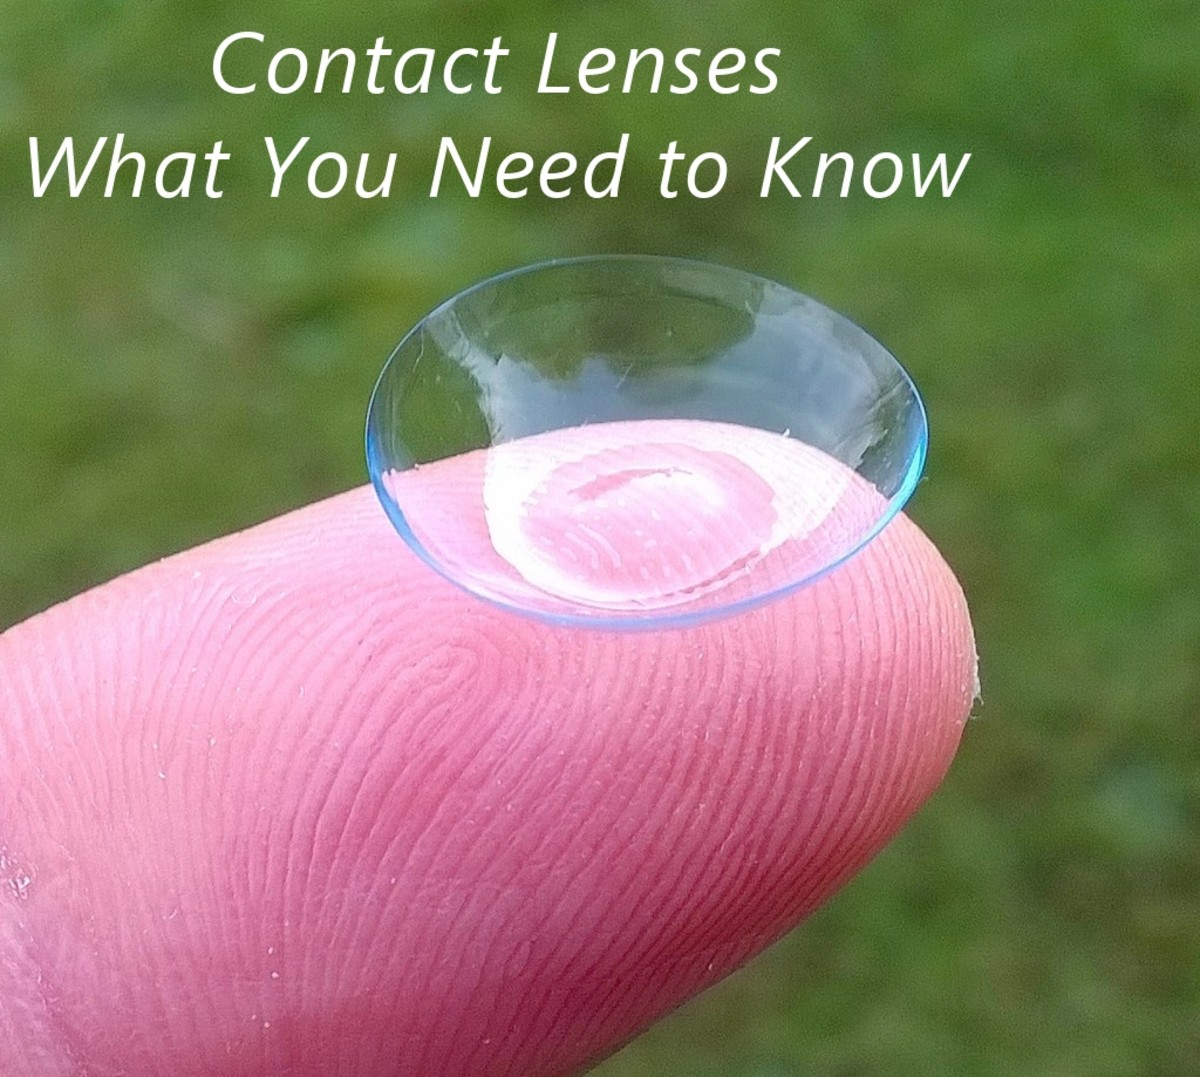 Wearing Contact Lenses - Everything You Need to Know